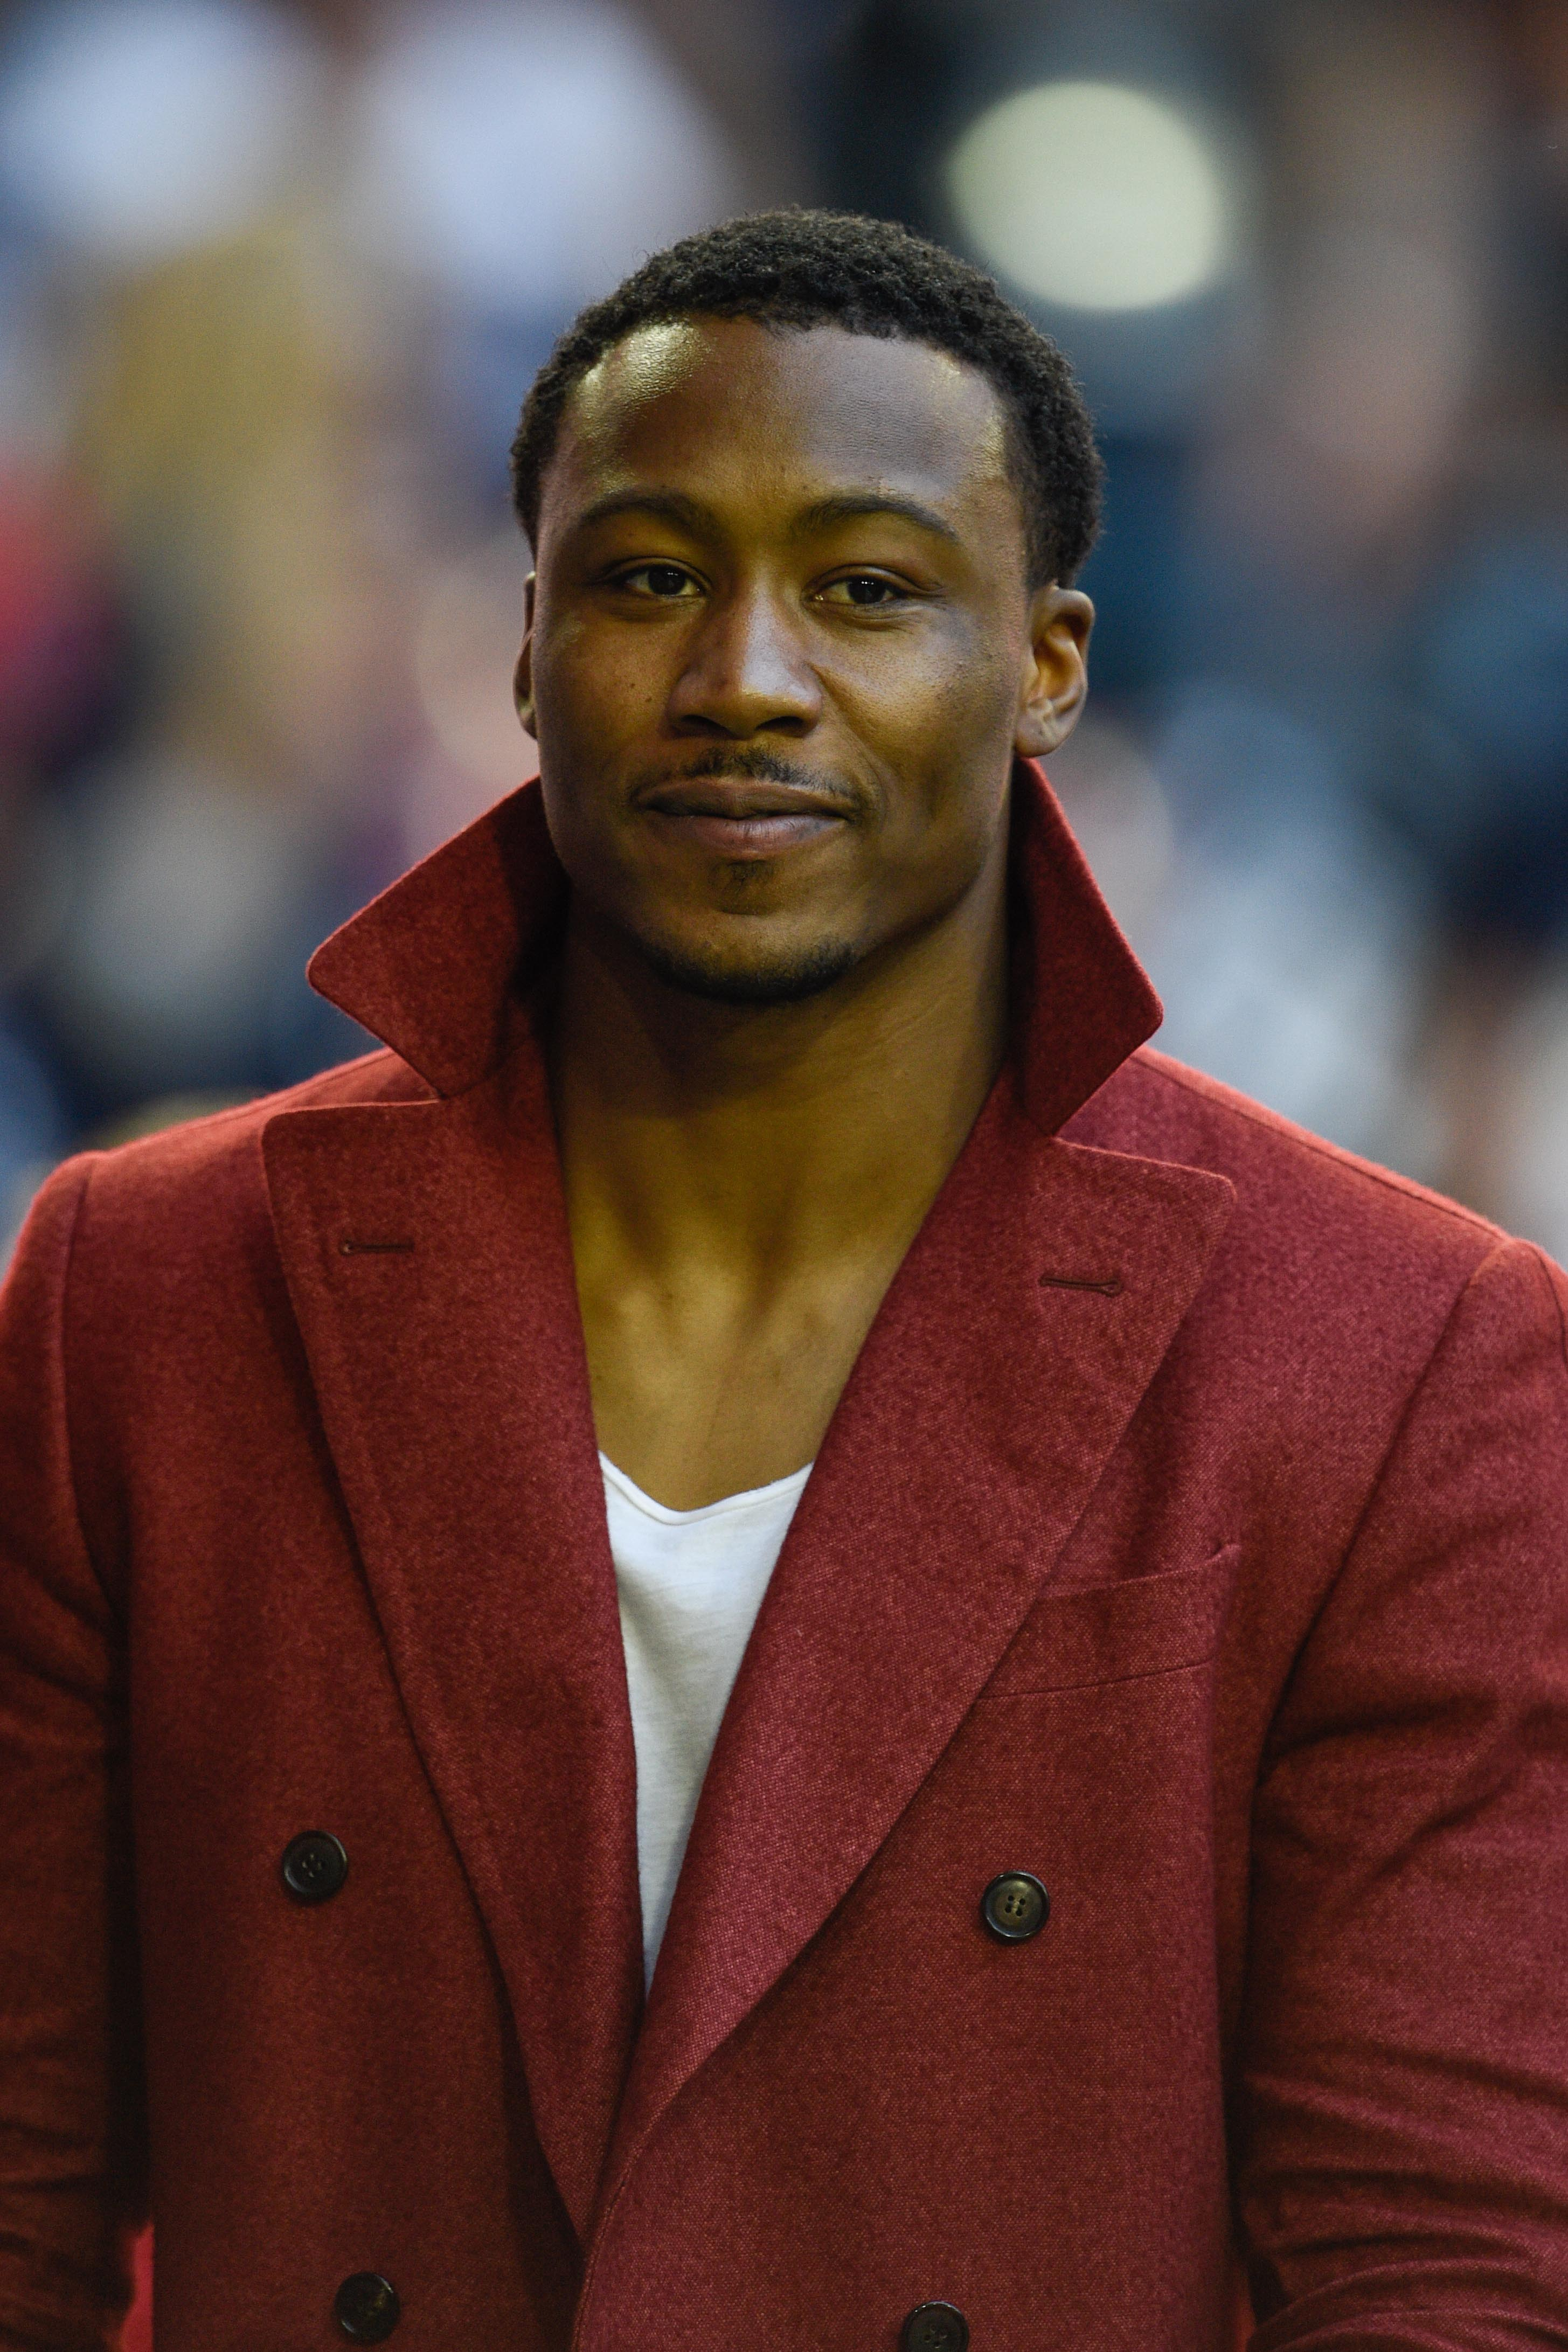 promo code 93bbb d22d6 Details On Brandon Marshall's Seahawks Contract